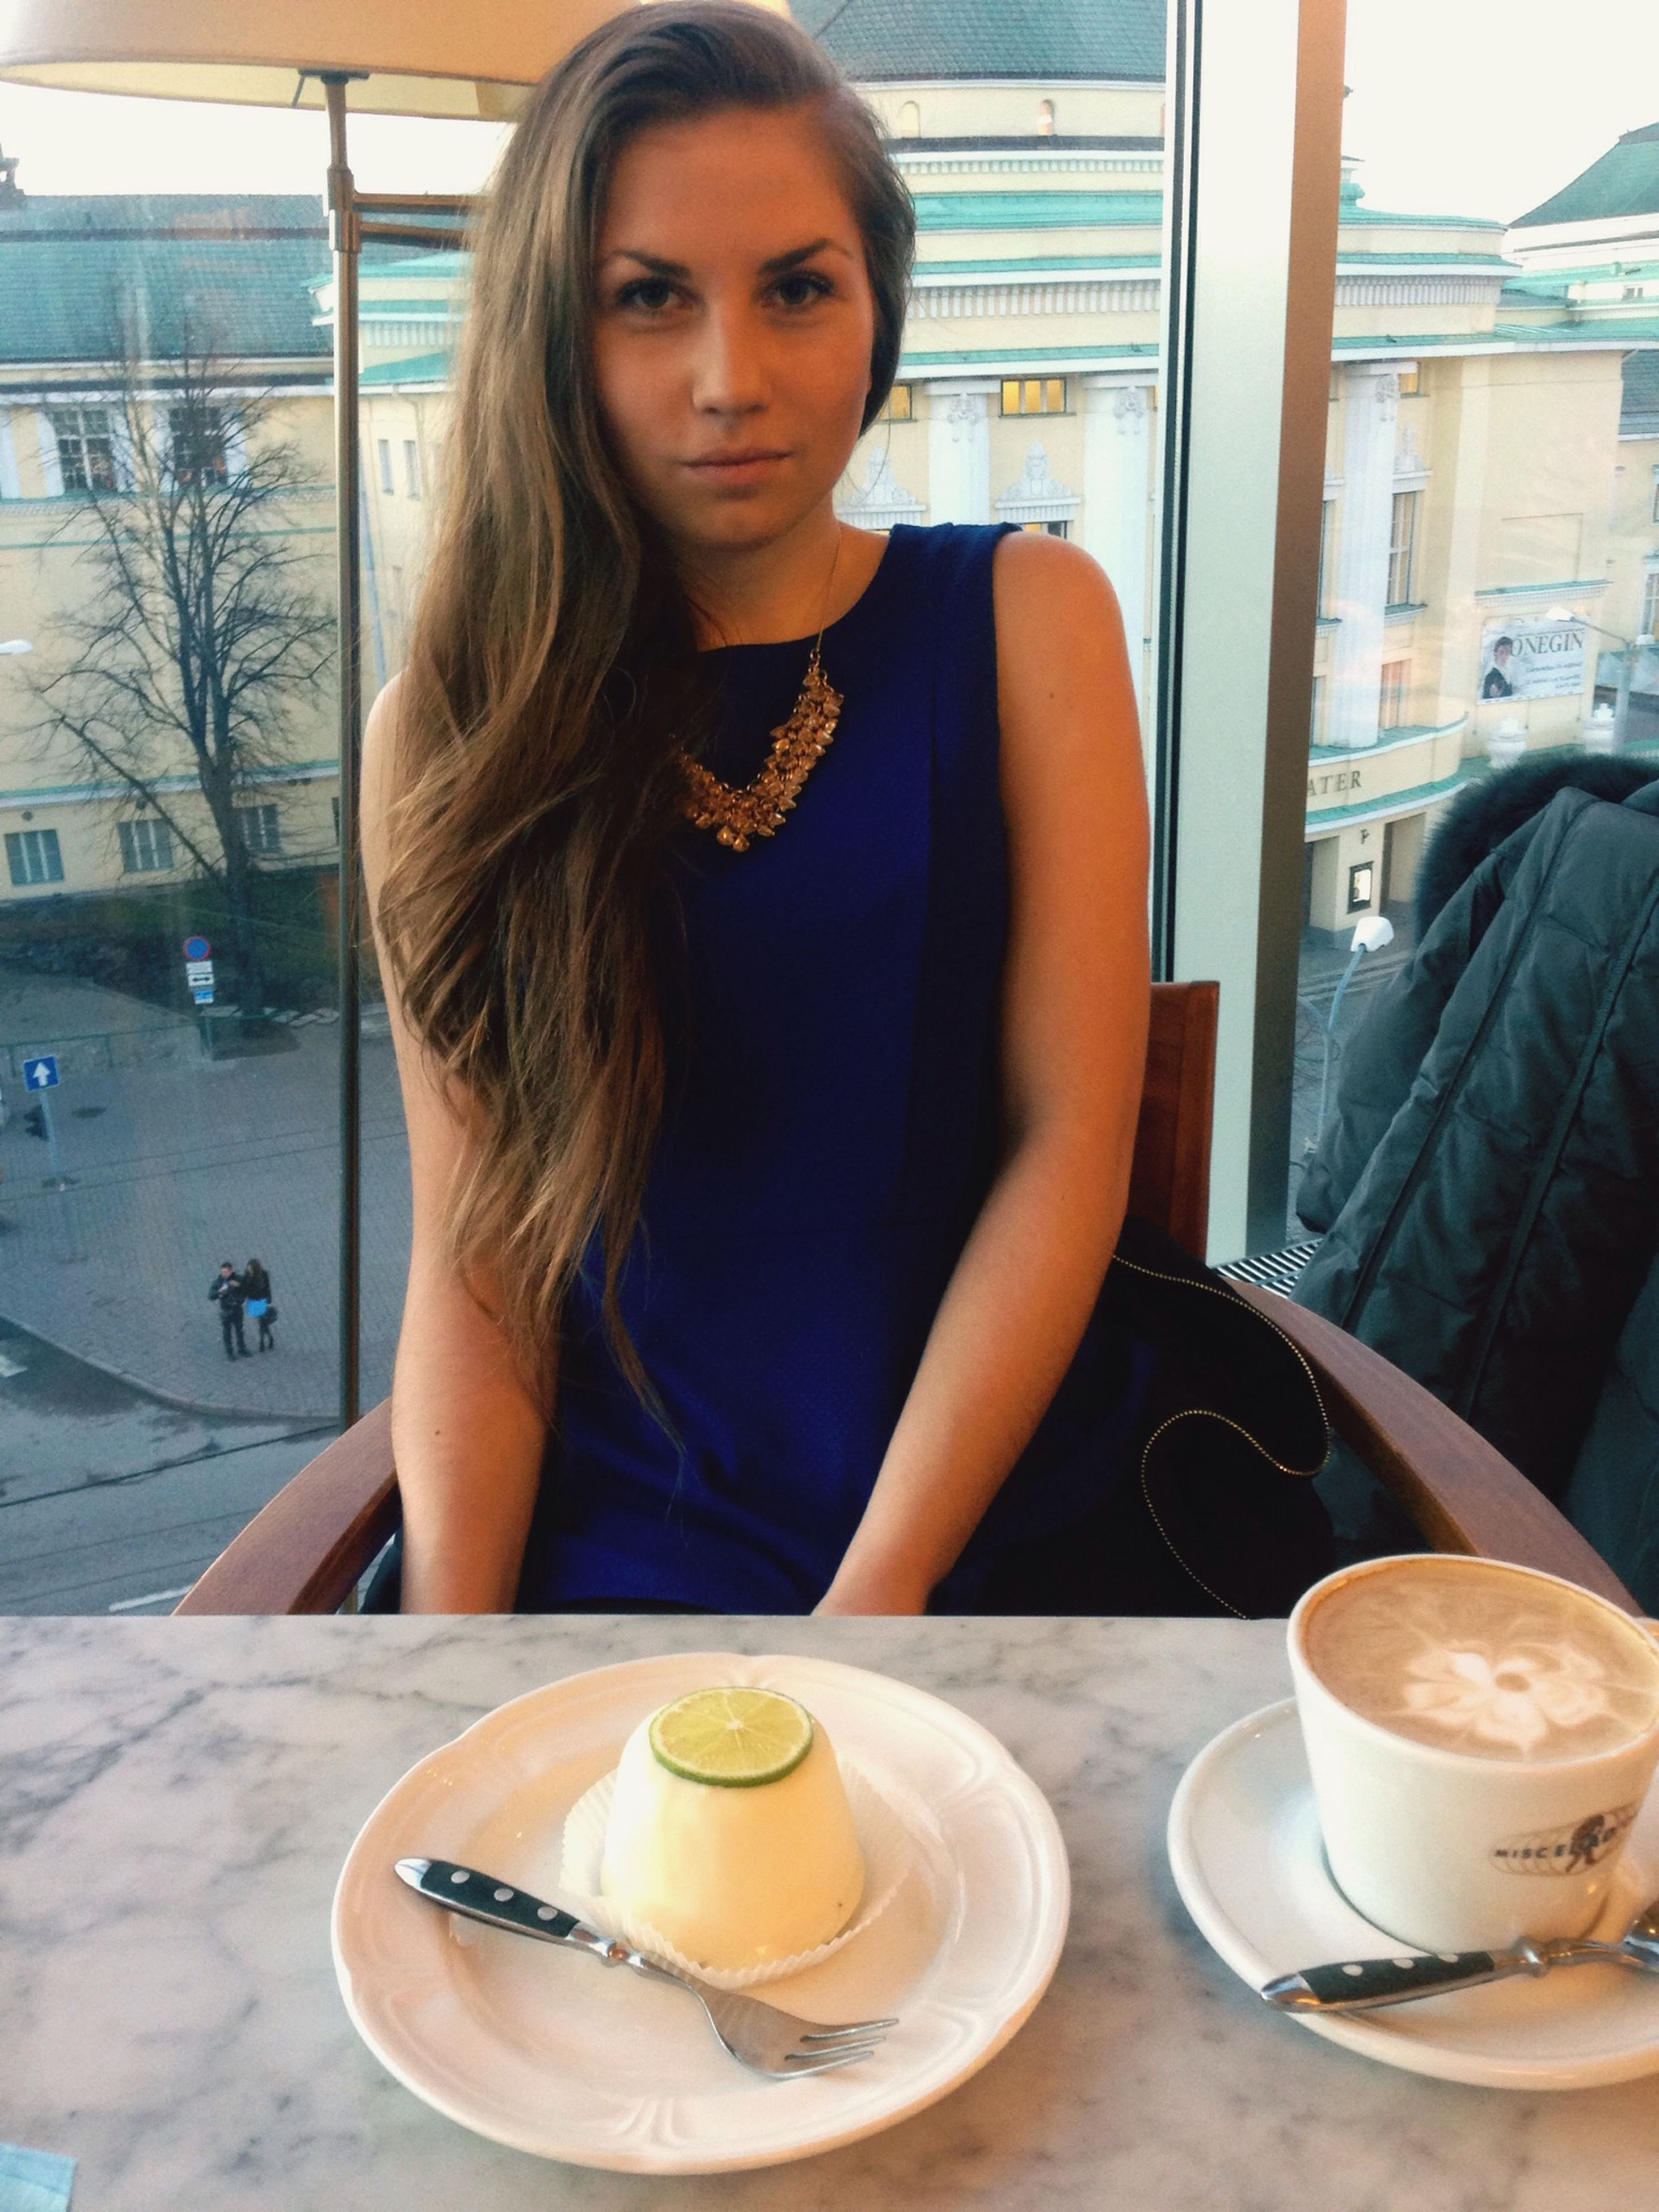 food and drink, drink, indoors, lifestyles, young adult, table, person, sitting, leisure activity, refreshment, young women, casual clothing, coffee cup, front view, restaurant, looking at camera, portrait, coffee